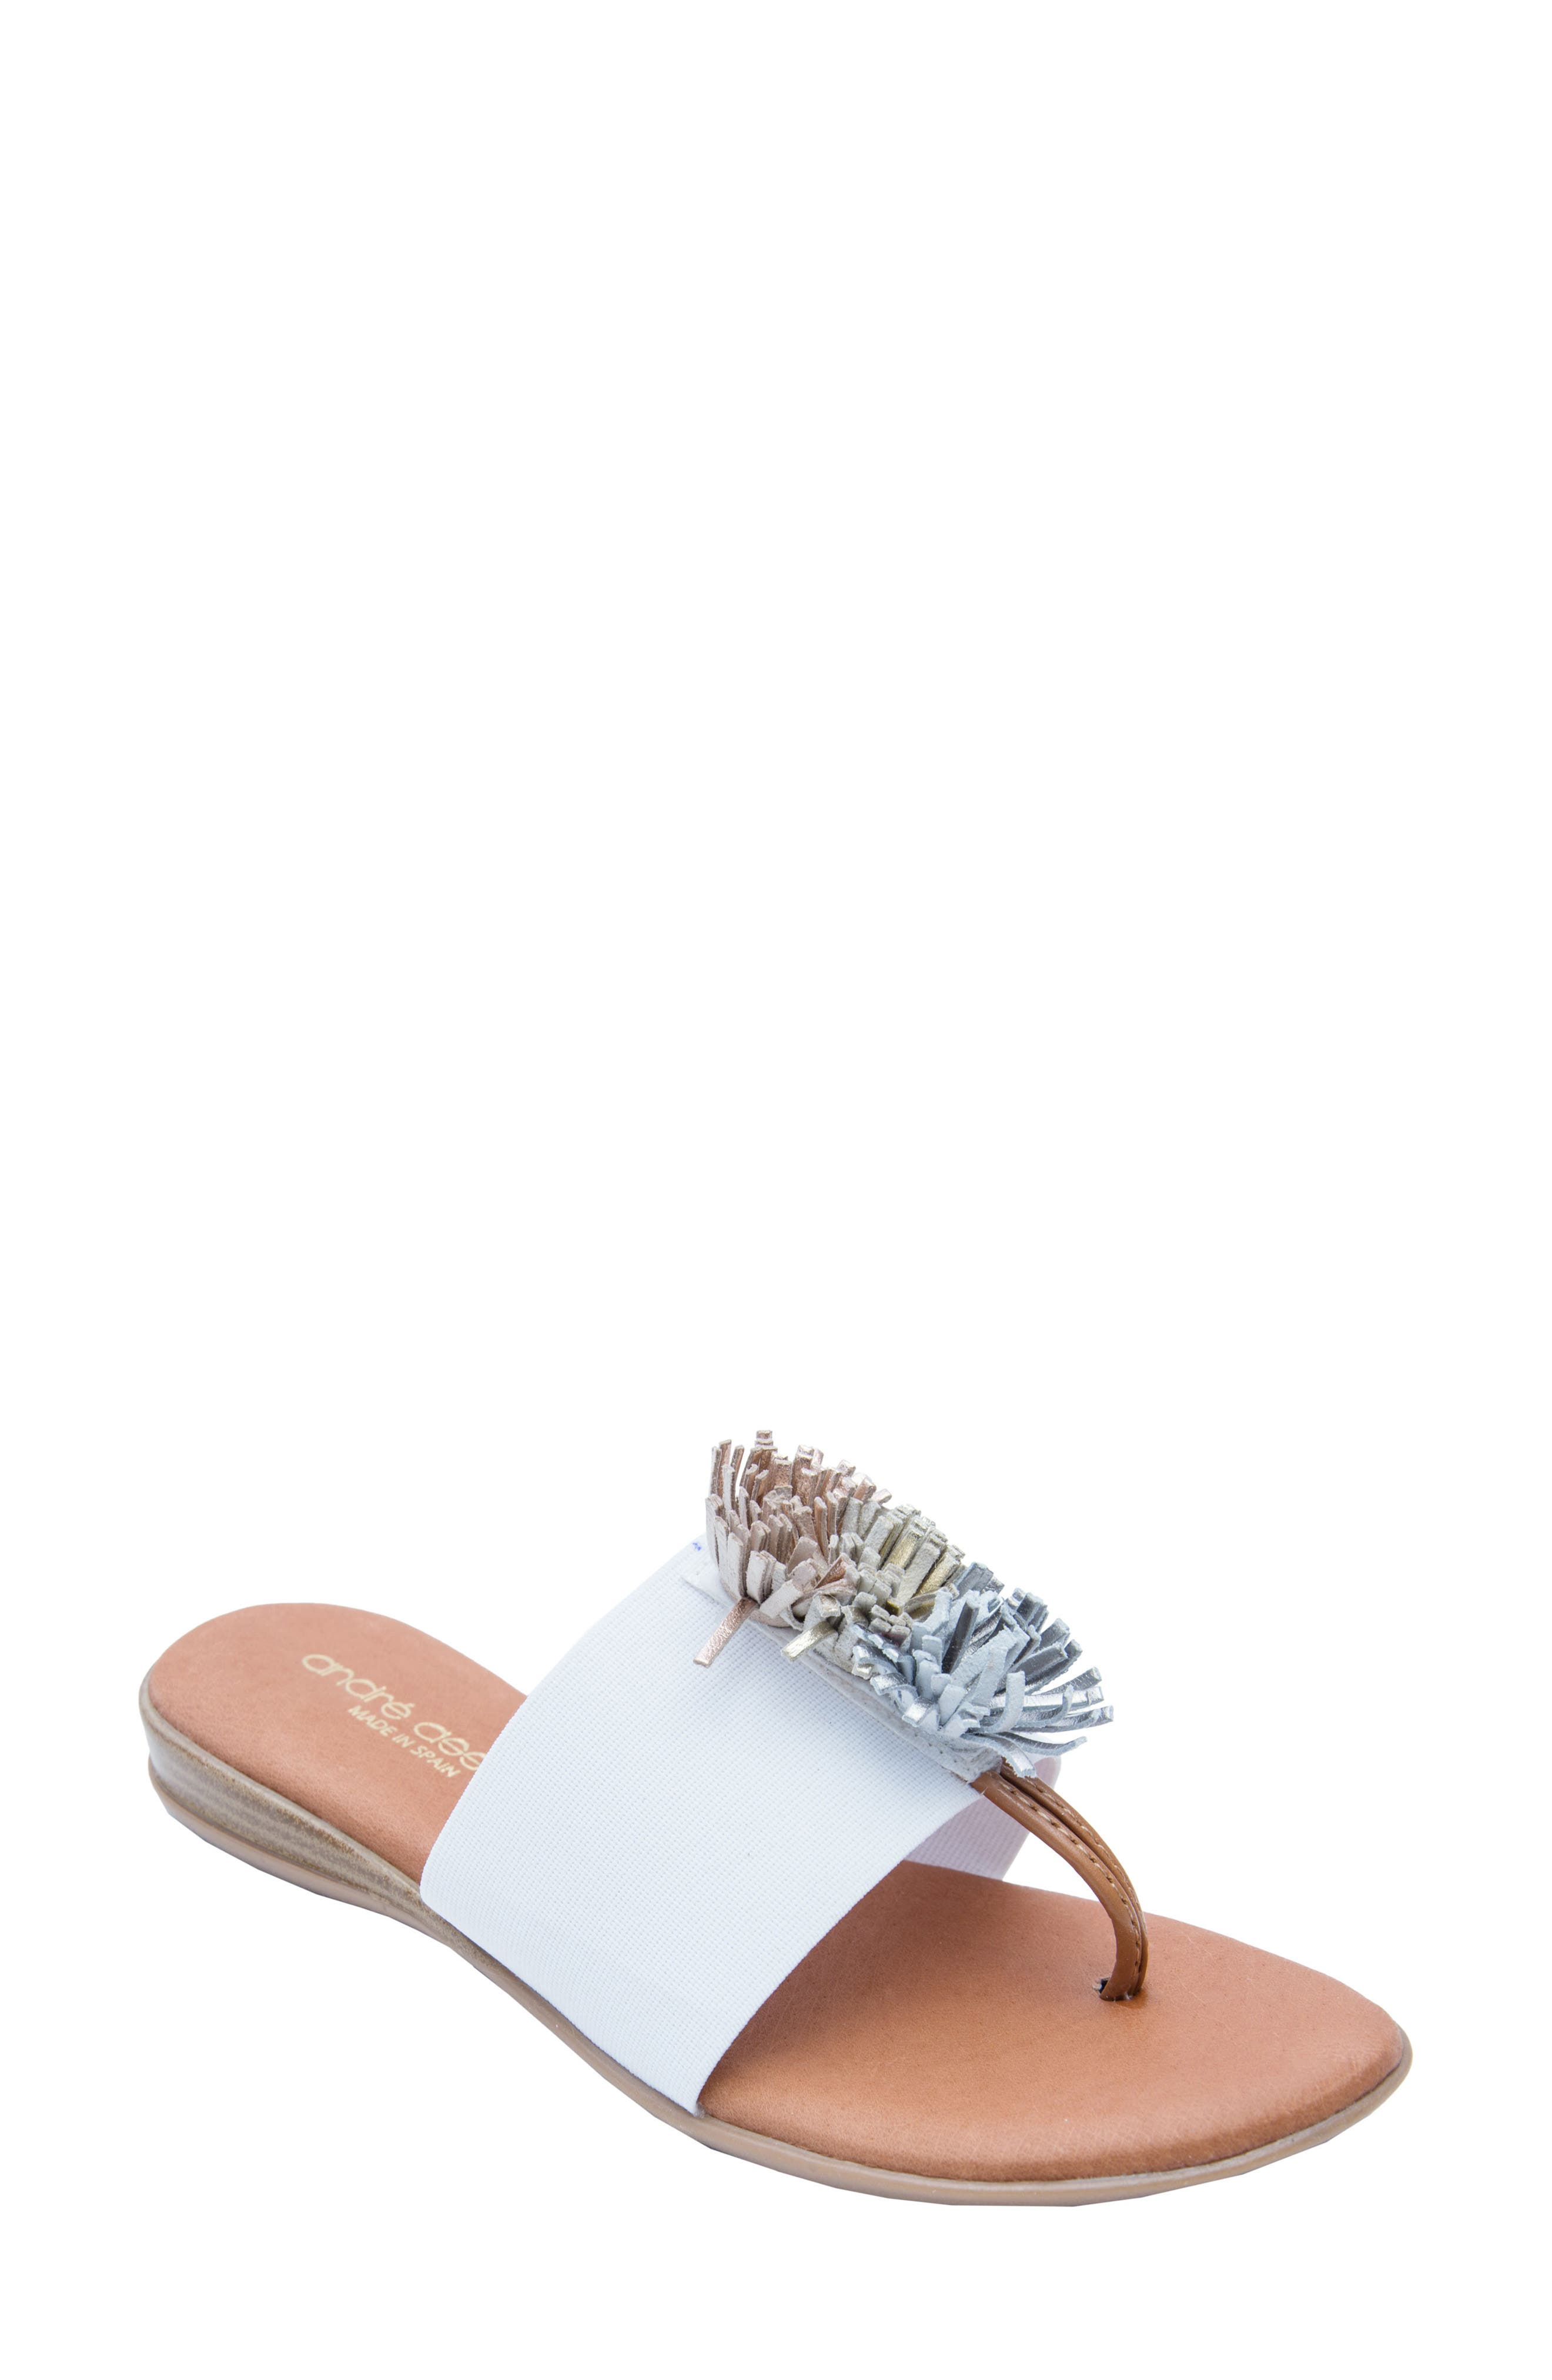 ANDRE ASSOUS Women'S Novalee Leather Fringe Demi Wedge Sandals in White Metal Fabric